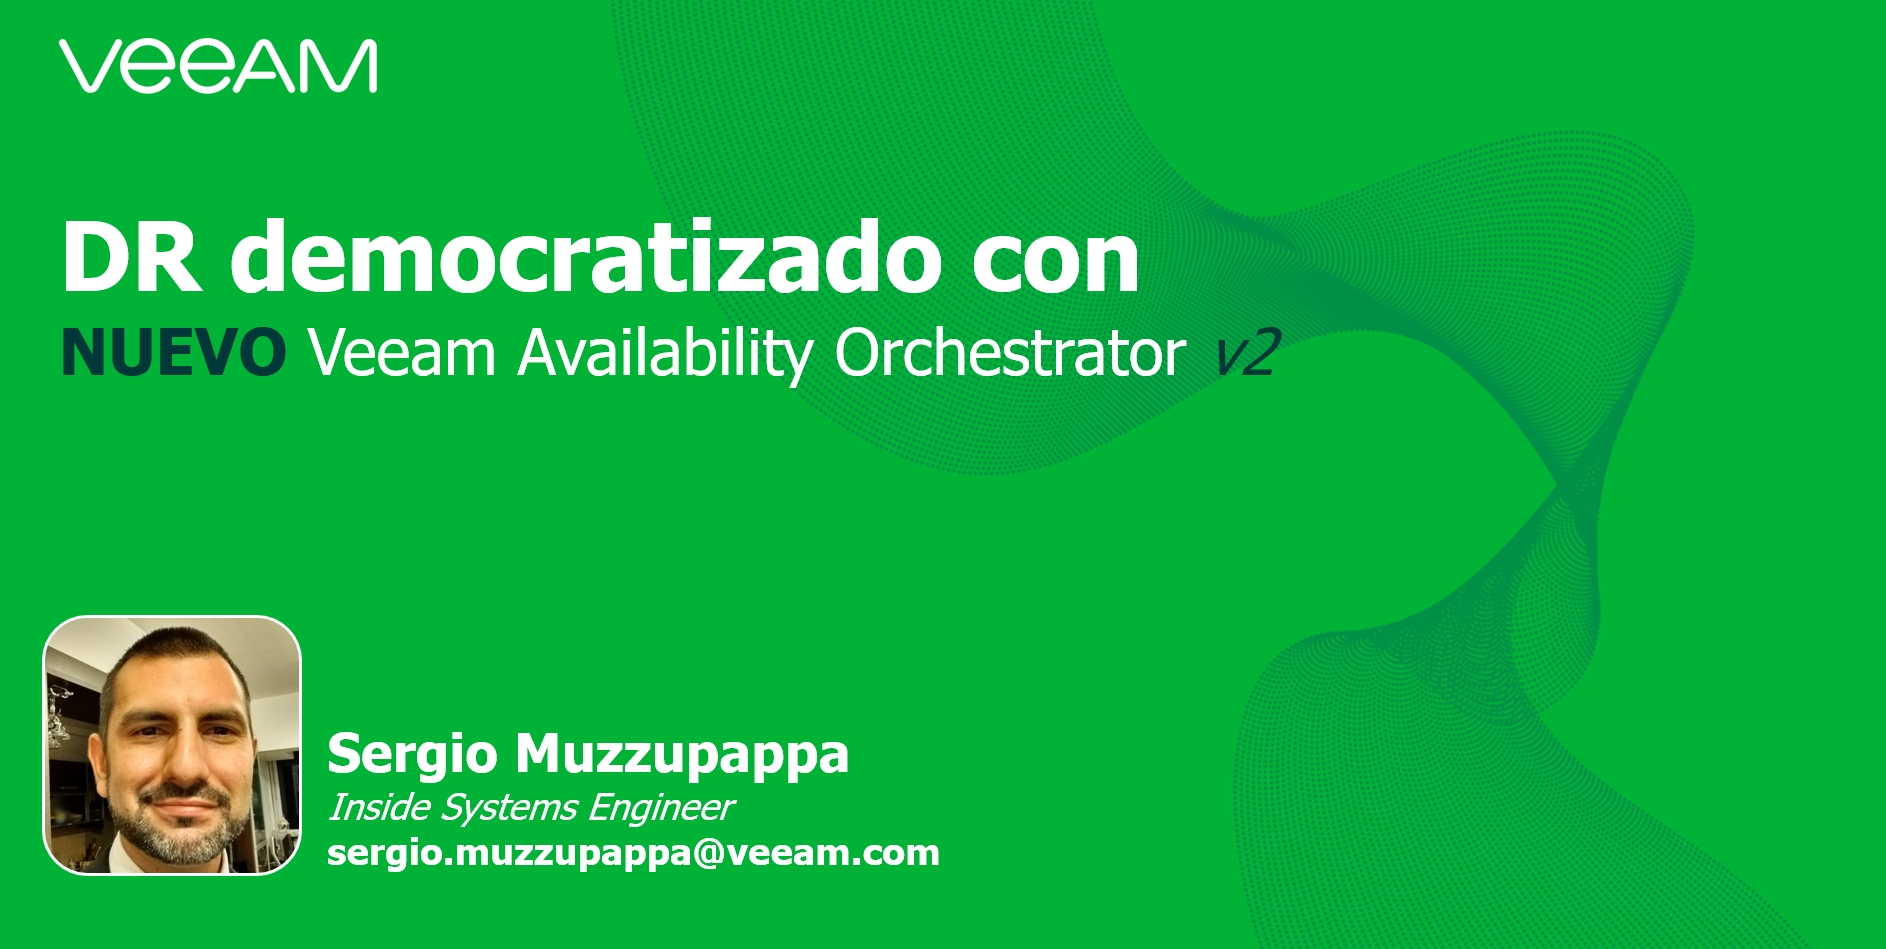 DR democratizado con Veeam Availability Orchestrator v2